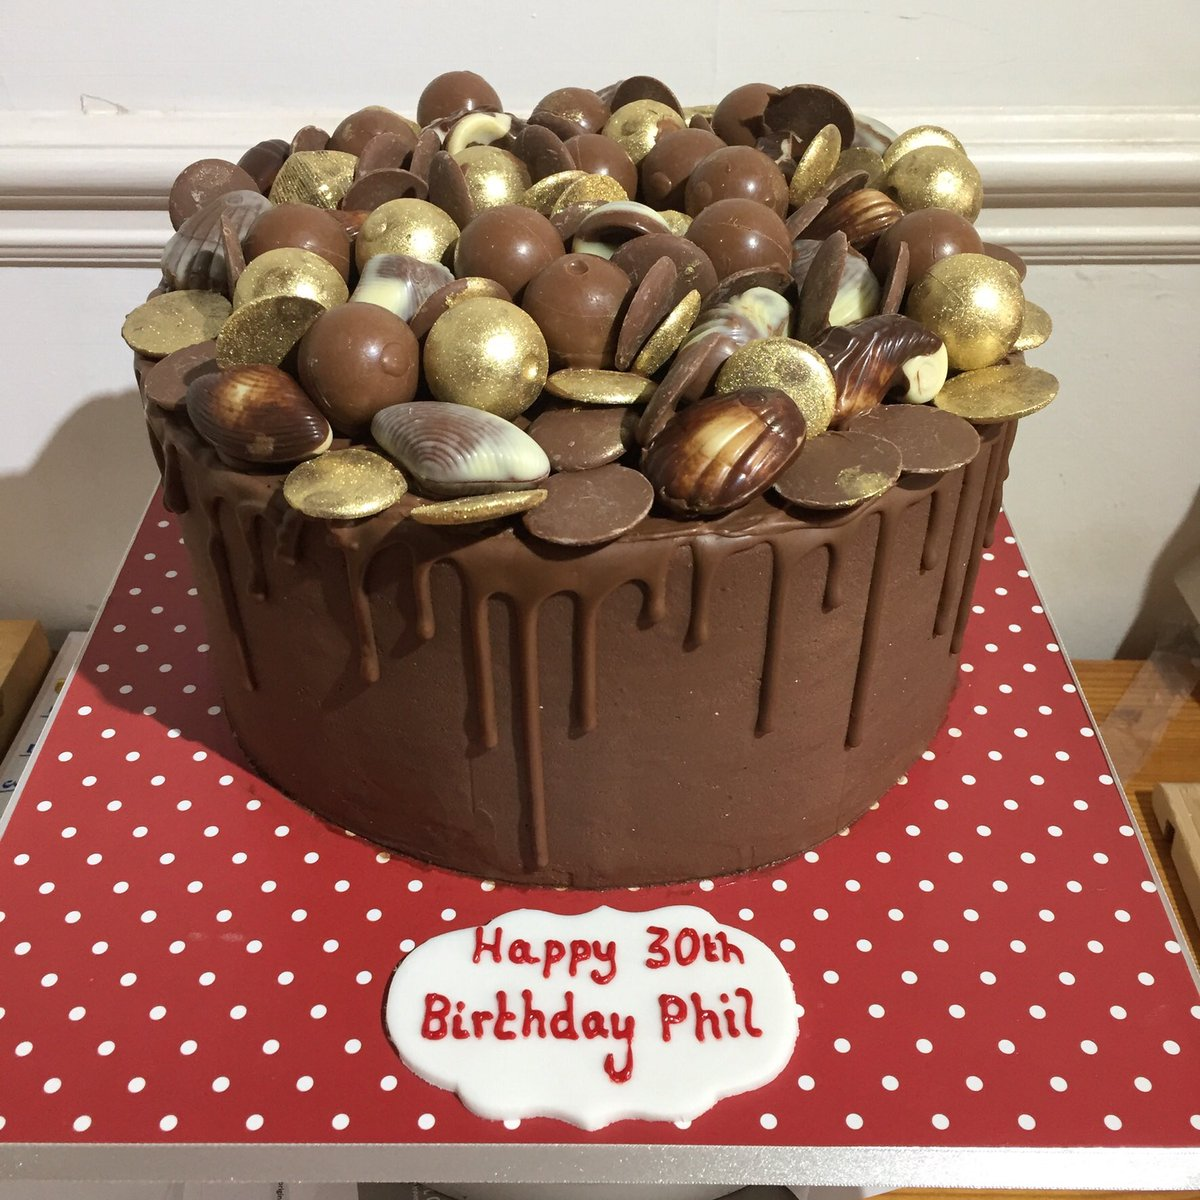 Iced Images Cakes On Twitter Chocolate Lovers Birthday Cake With